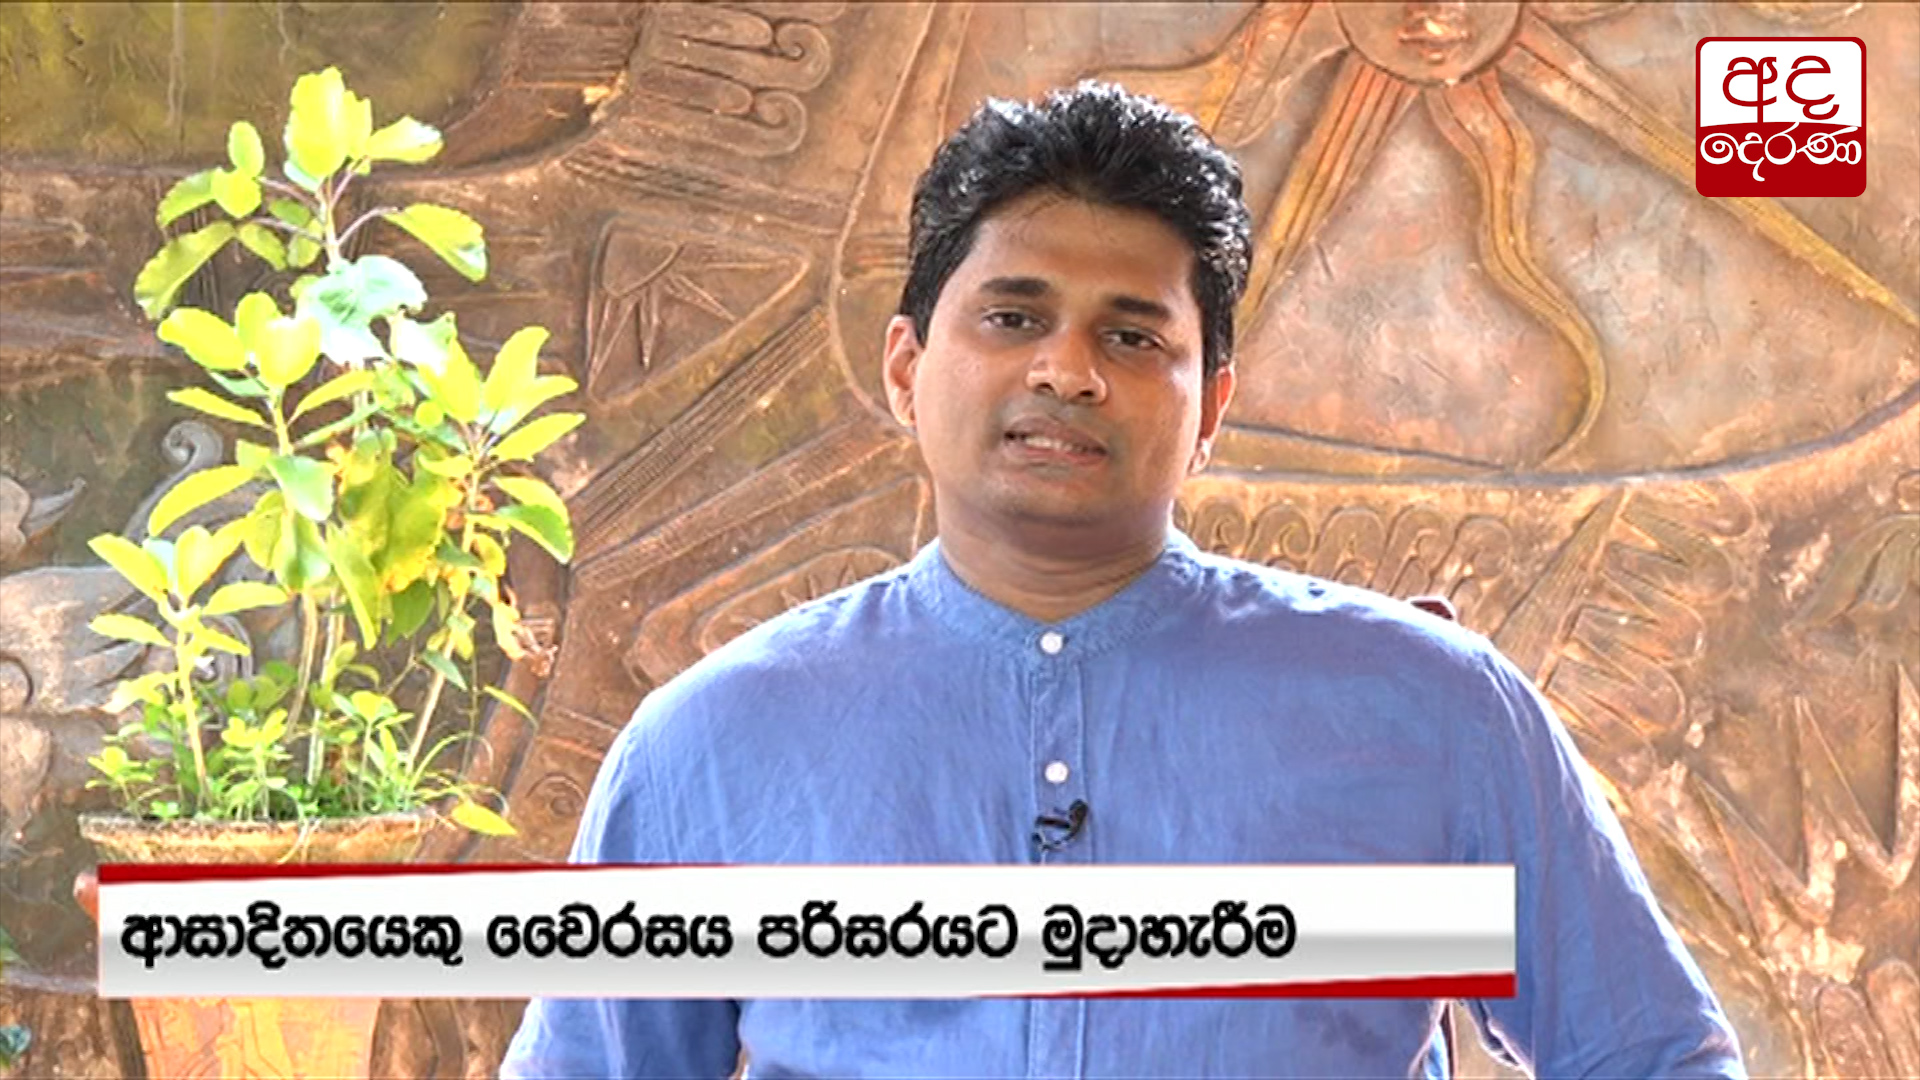 Wearing face masks can prevent virus from spreading – Channa Jayasumana